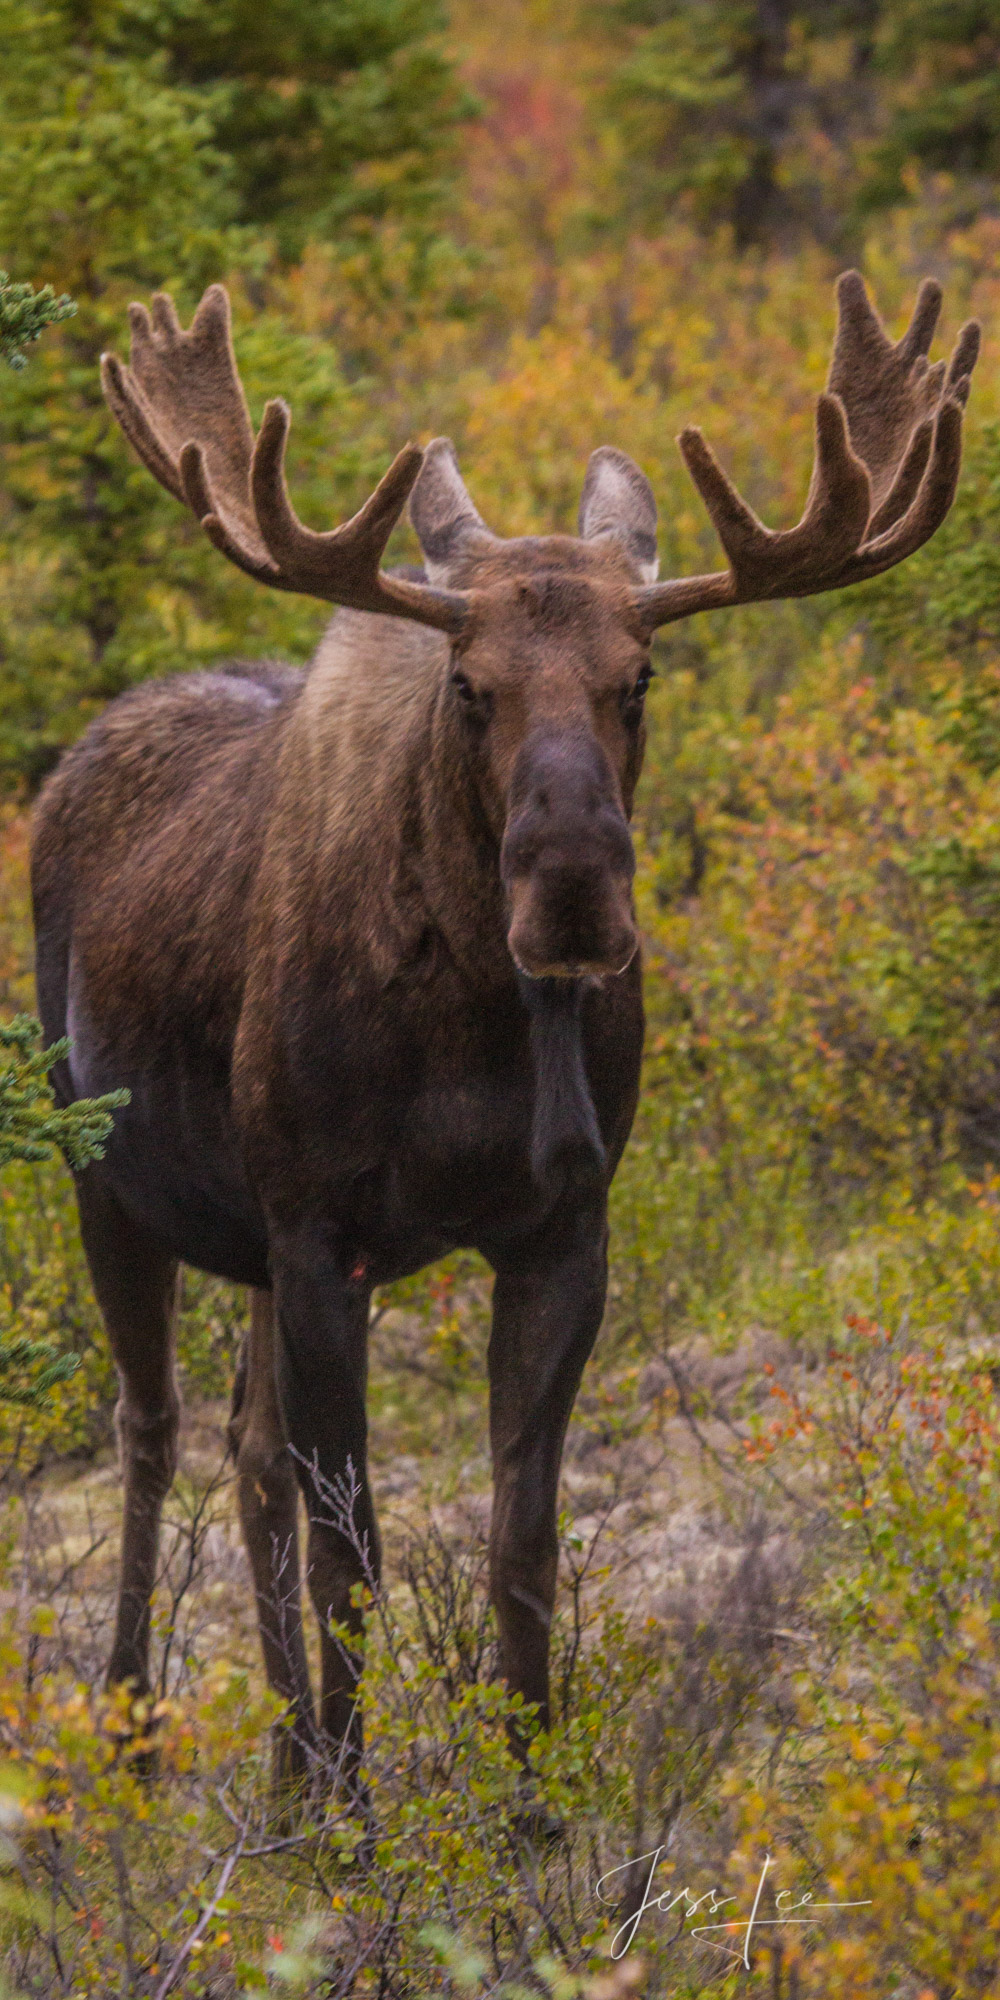 Denali Alaska, Bull Moose looking very unhappy. A limited edition of 800 prints. These Moose fine art wildlife photographs are...